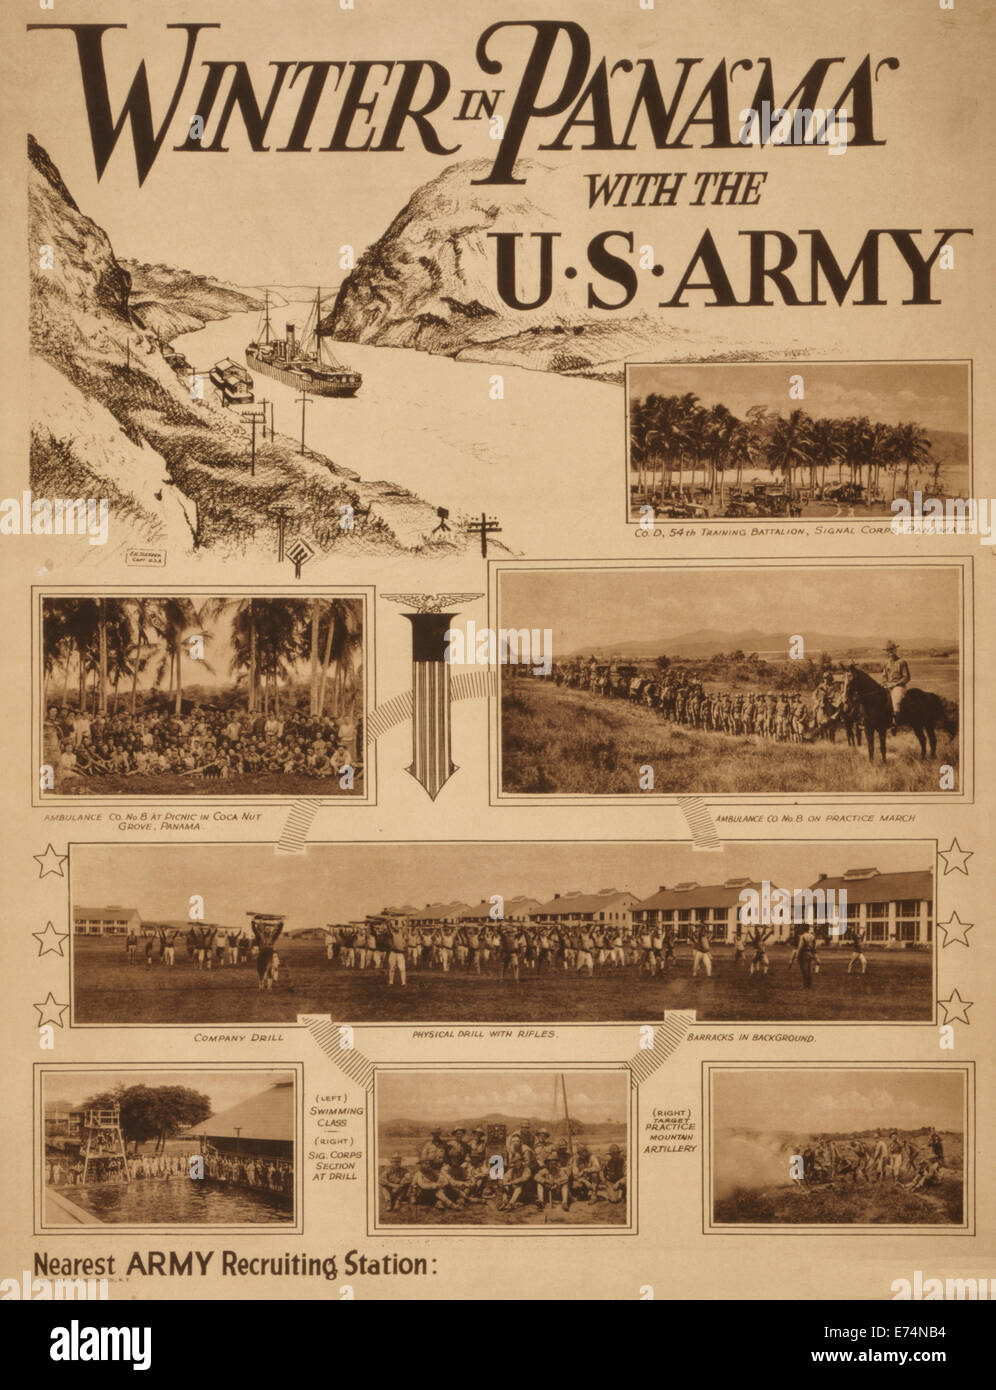 Winter in Panama with the U.S. Army - Summary: U.S. Army recruiting poster with drawing by E.H. Sleeper, Capt. U.S.A., - Stock Image